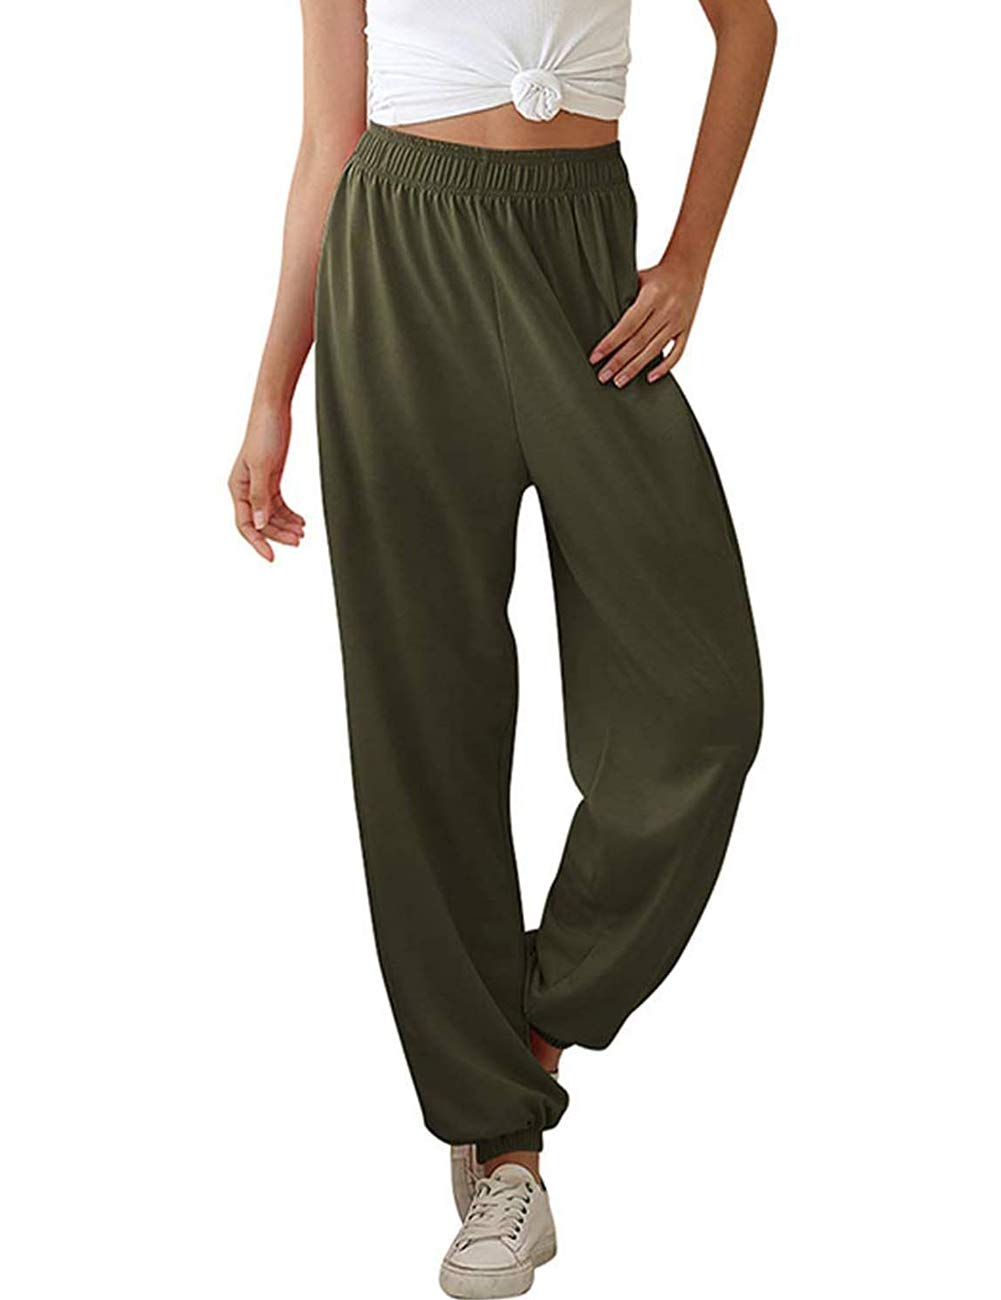 MEROKEETY Women's Active High Waisted Jogger Sweatpants Baggy Lounge Pants with Pockets